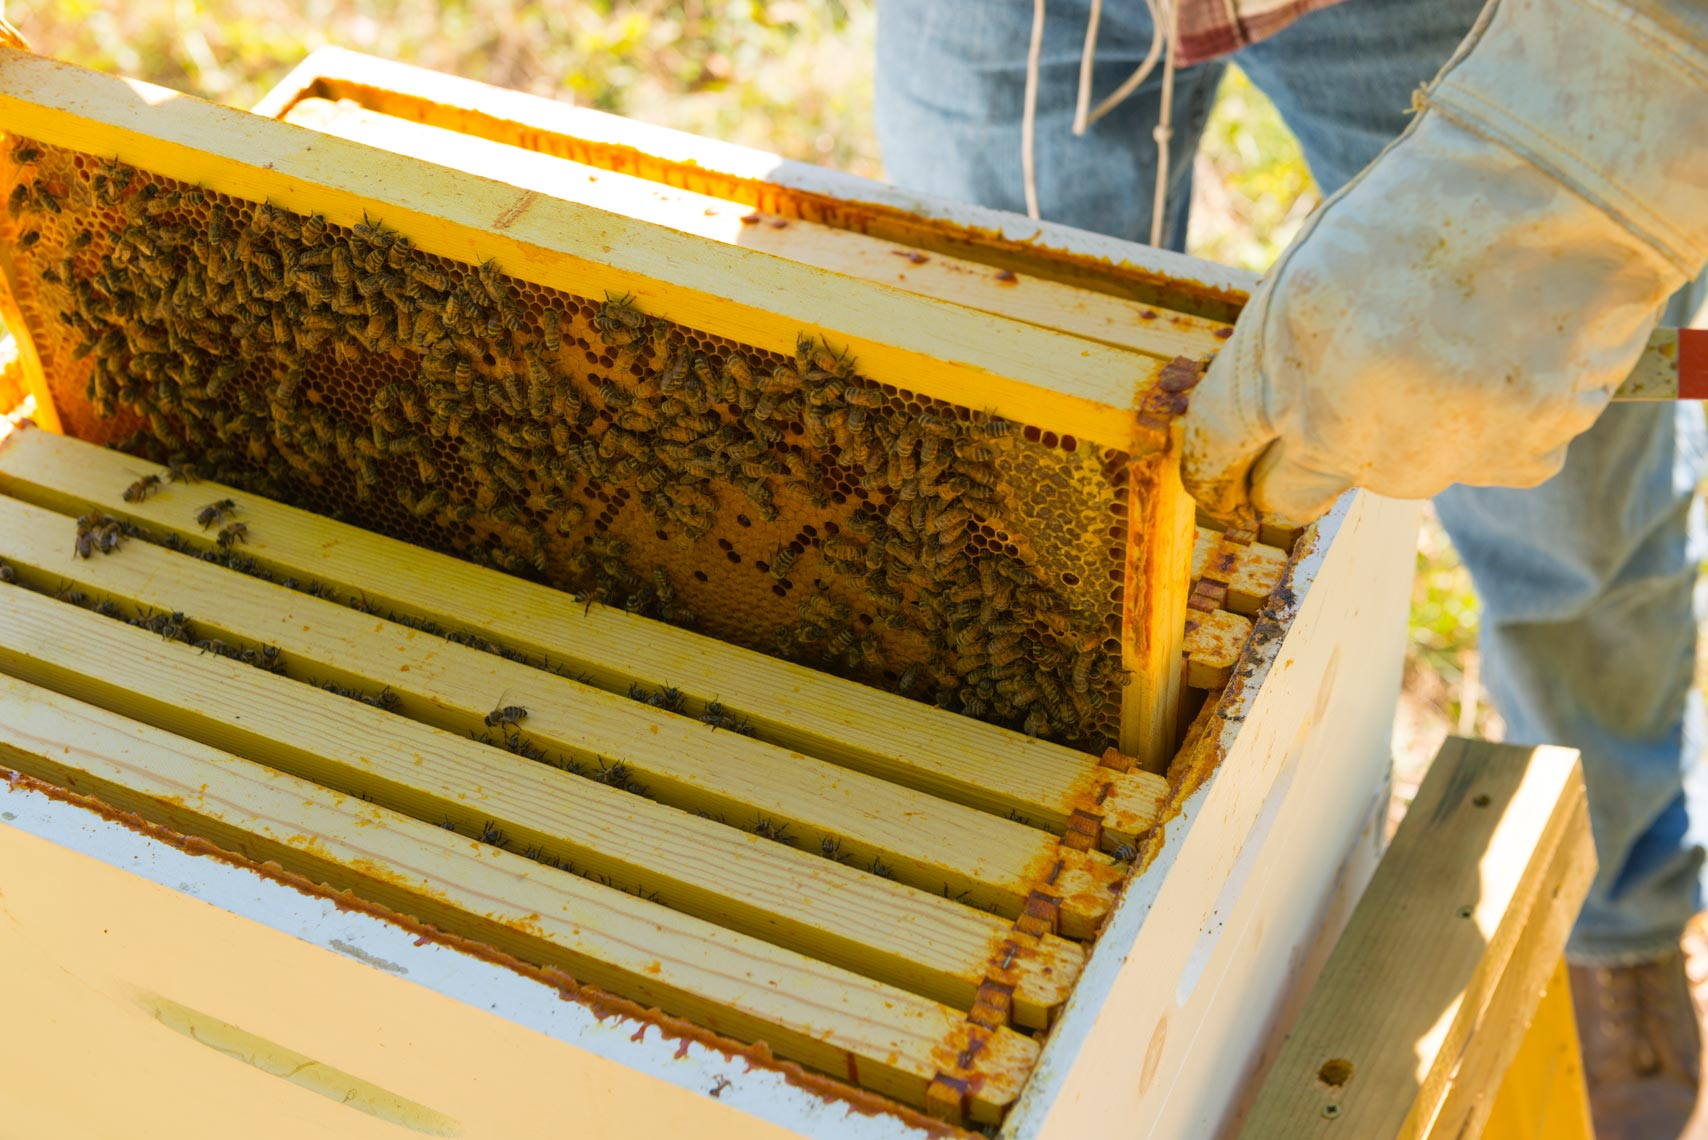 Beekeeping - Food & Farm To Table Photographer - Bucks County, Pennsylvania, New York, NYC, New Jersey